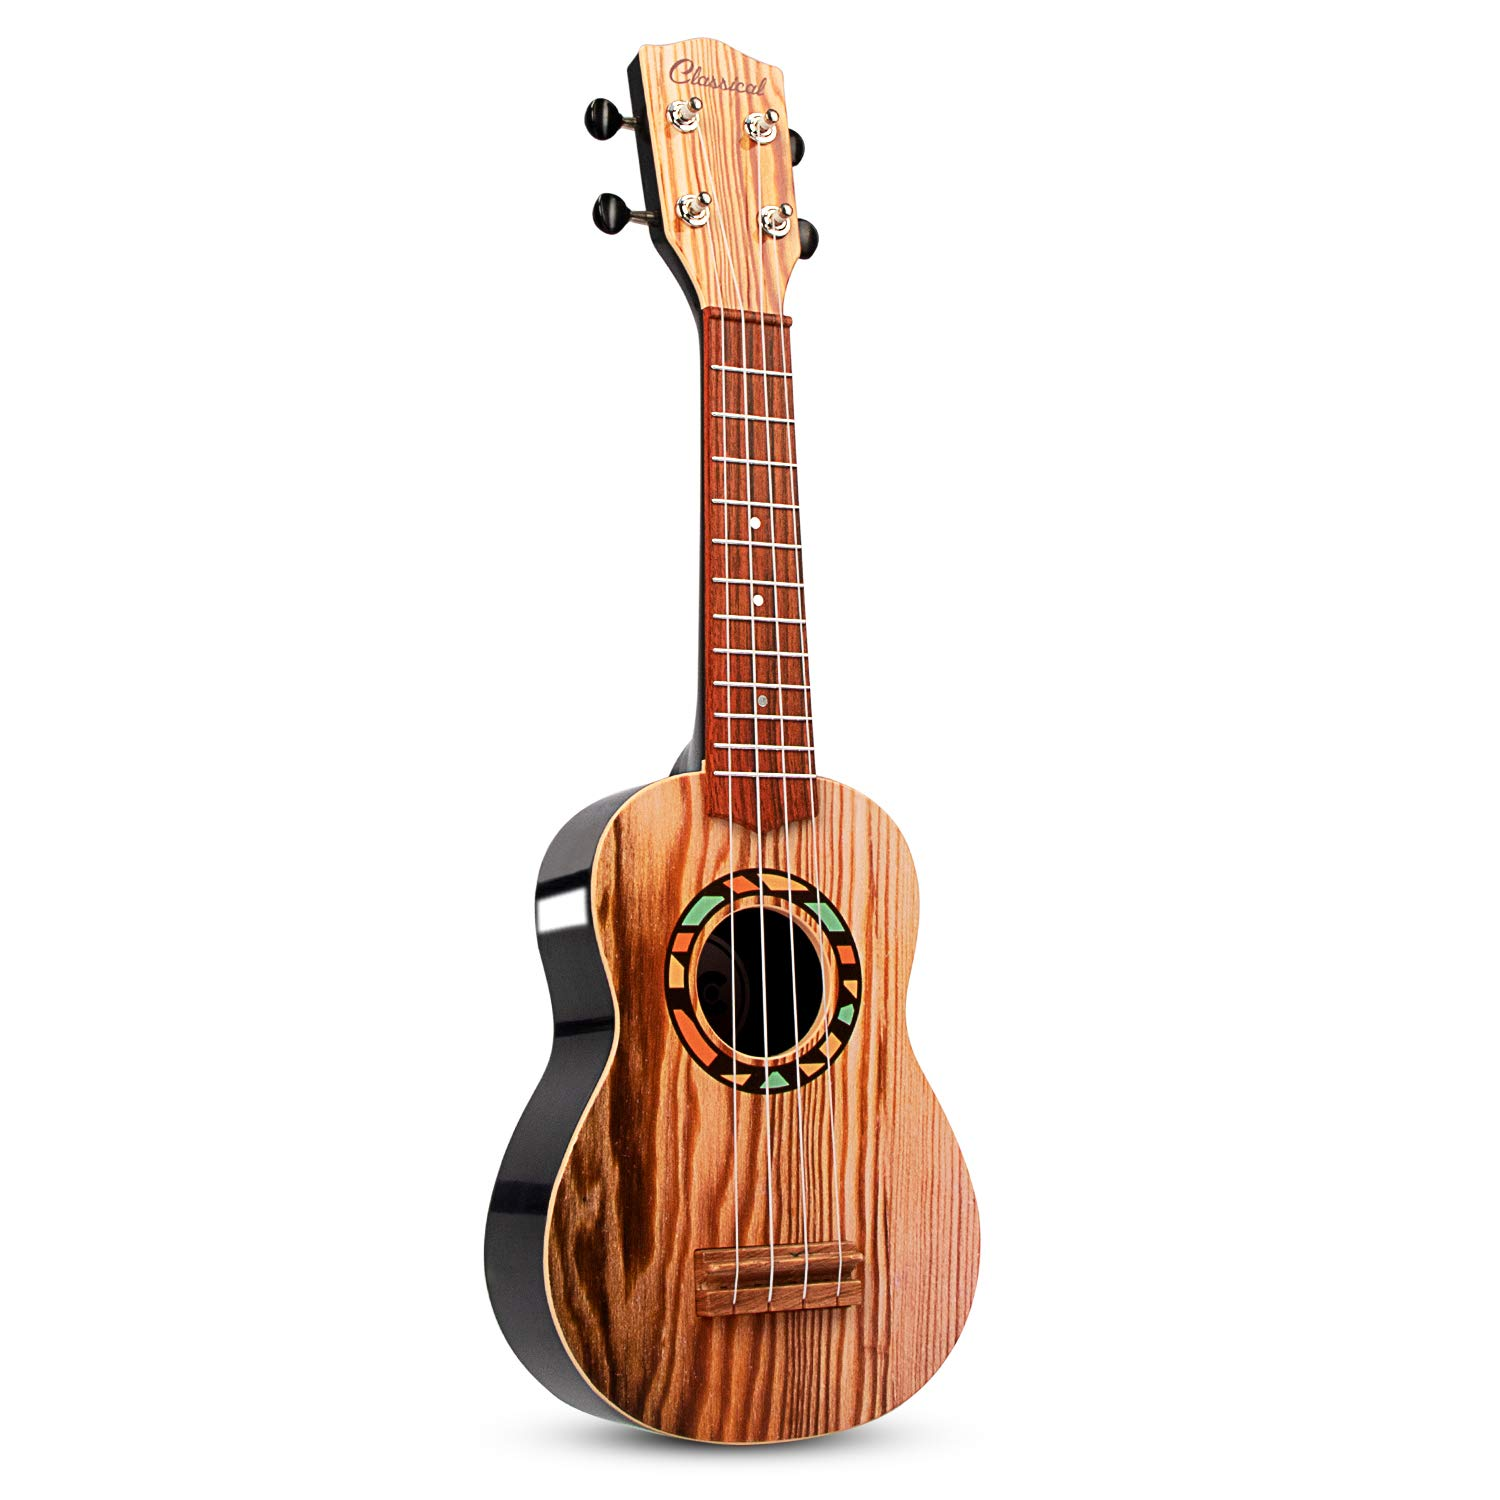 AIMEDYOU 21'' Mini Ukulele Guitar Toy for Kids, 4 Strings Children Musical Instruments Educational Toys with The Picks and Strap for Beginner Starter (Burlywood)